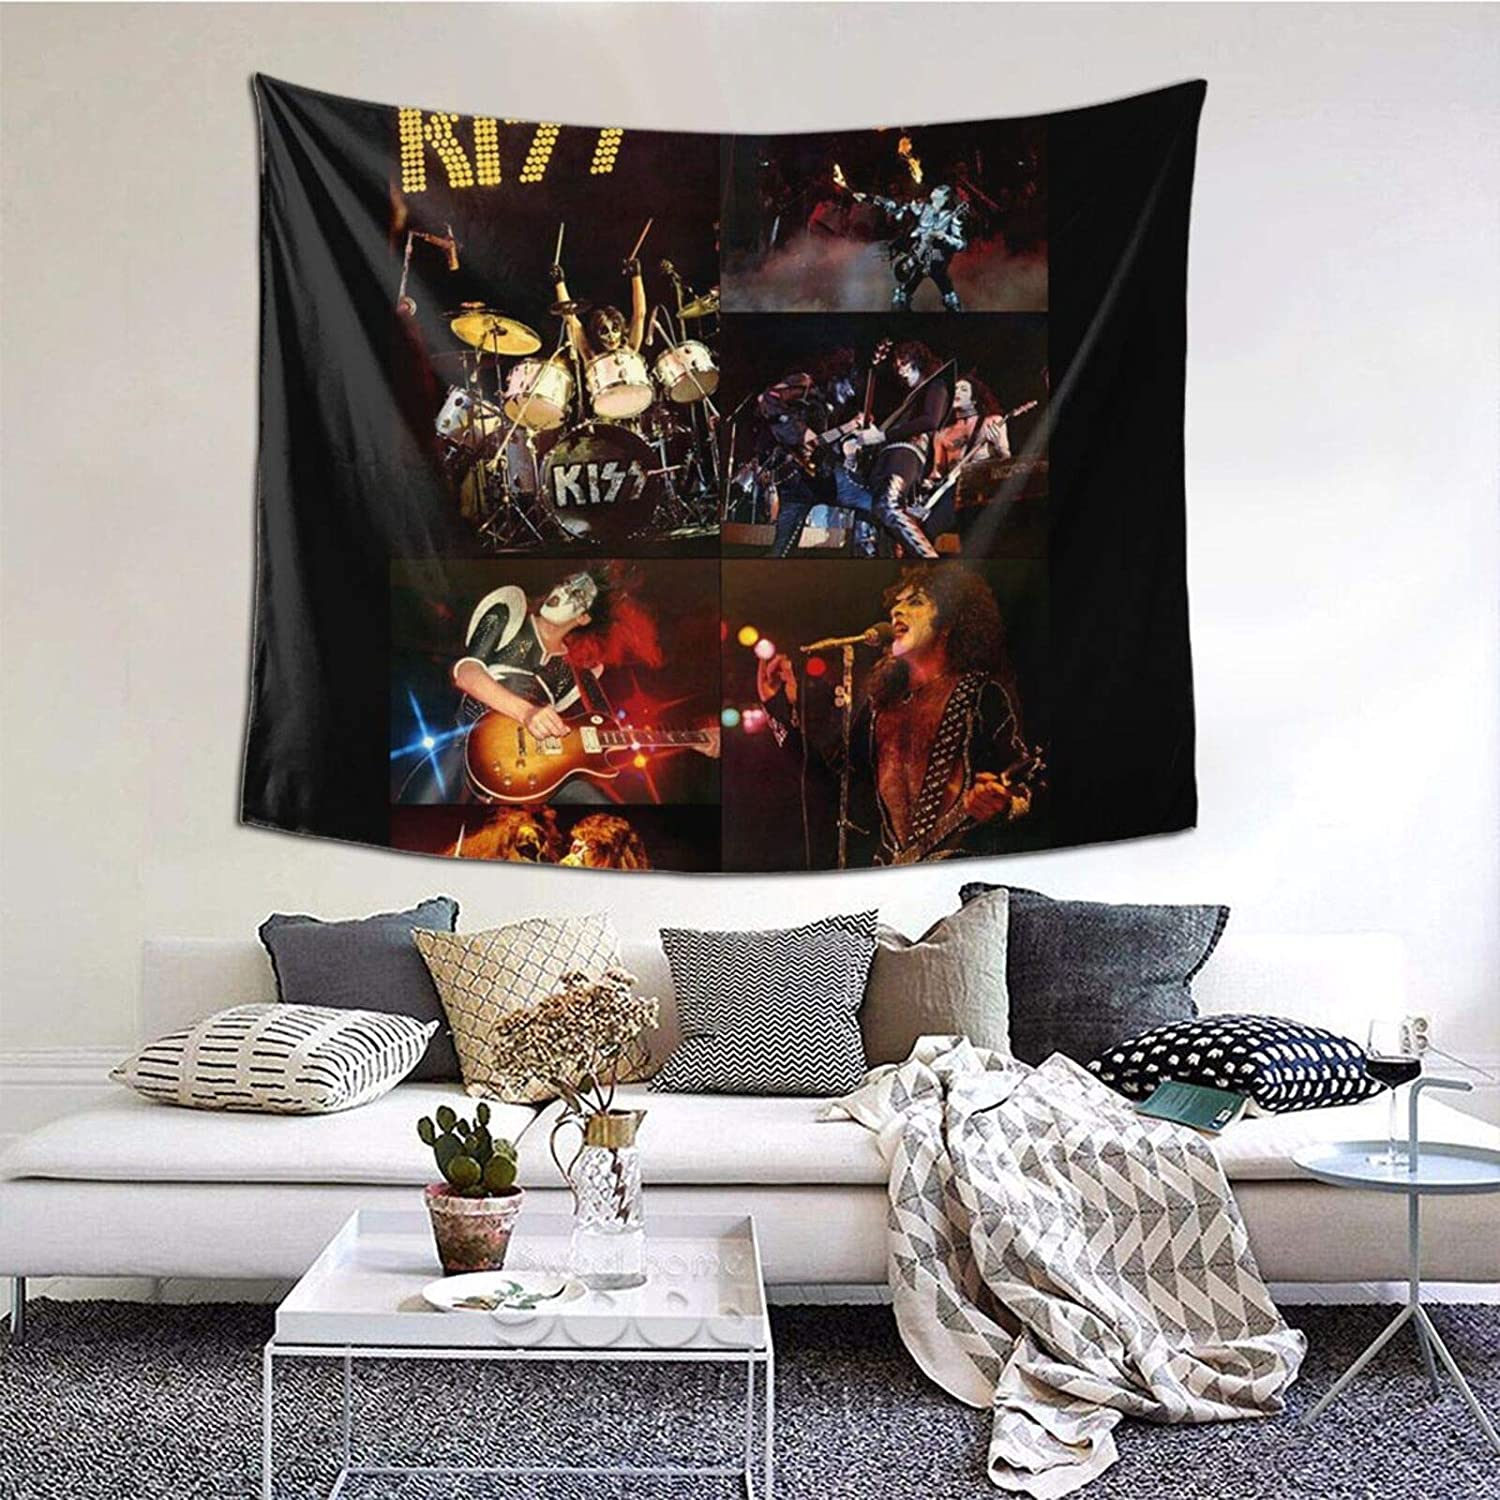 Tiyole Kiss-Rock-Band Tapestry Wall Hanging Colorful Mural for Bedroom Living Room Dorm Home Decorate Blankrt One Size